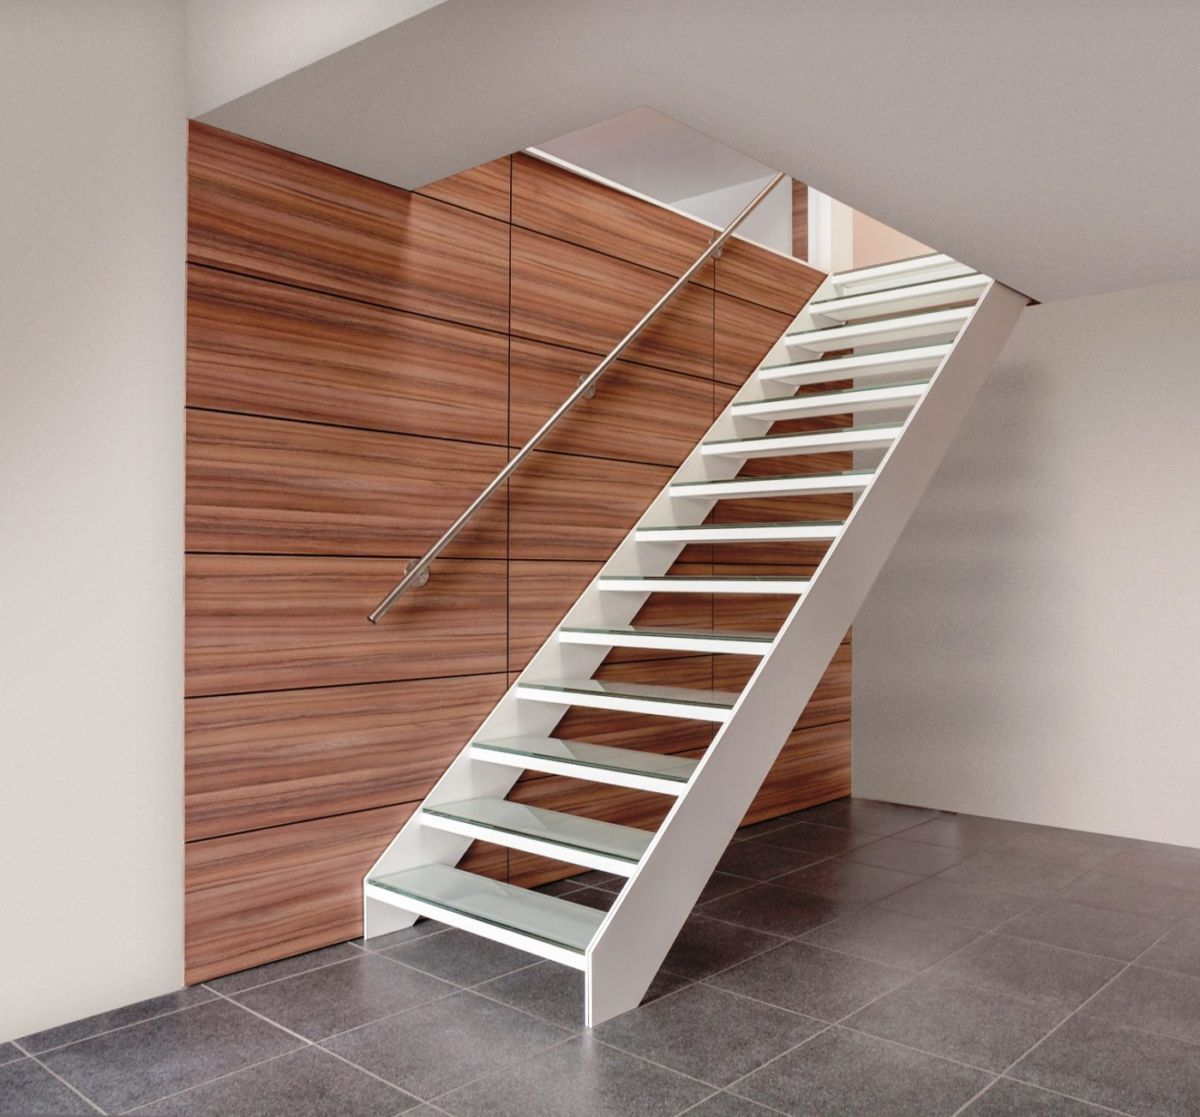 travaux confort escalier graah slide design aluminium trap escalier stair treppen